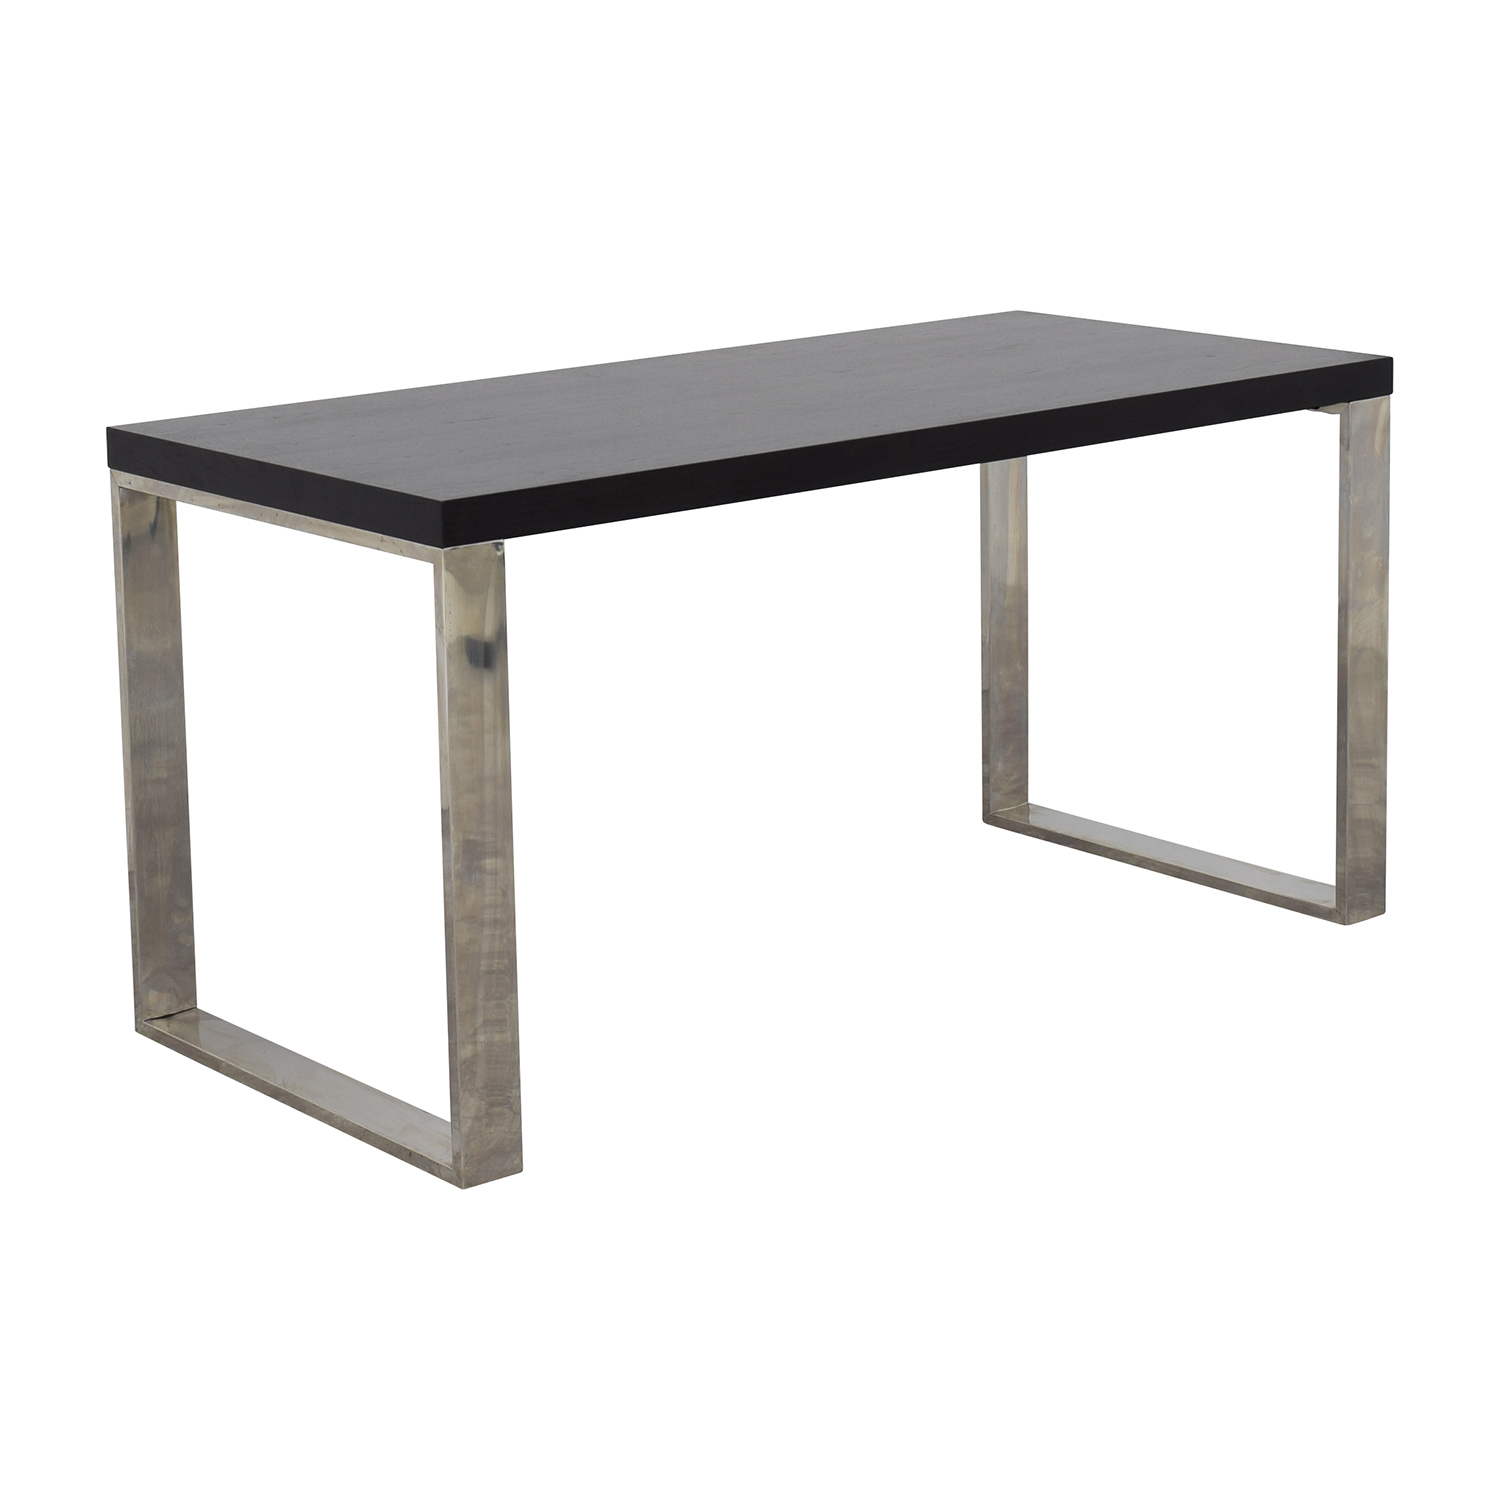 66 off macy 39 s macy 39 s stockholm oak and metal home office desk tables - Metal office desk ...